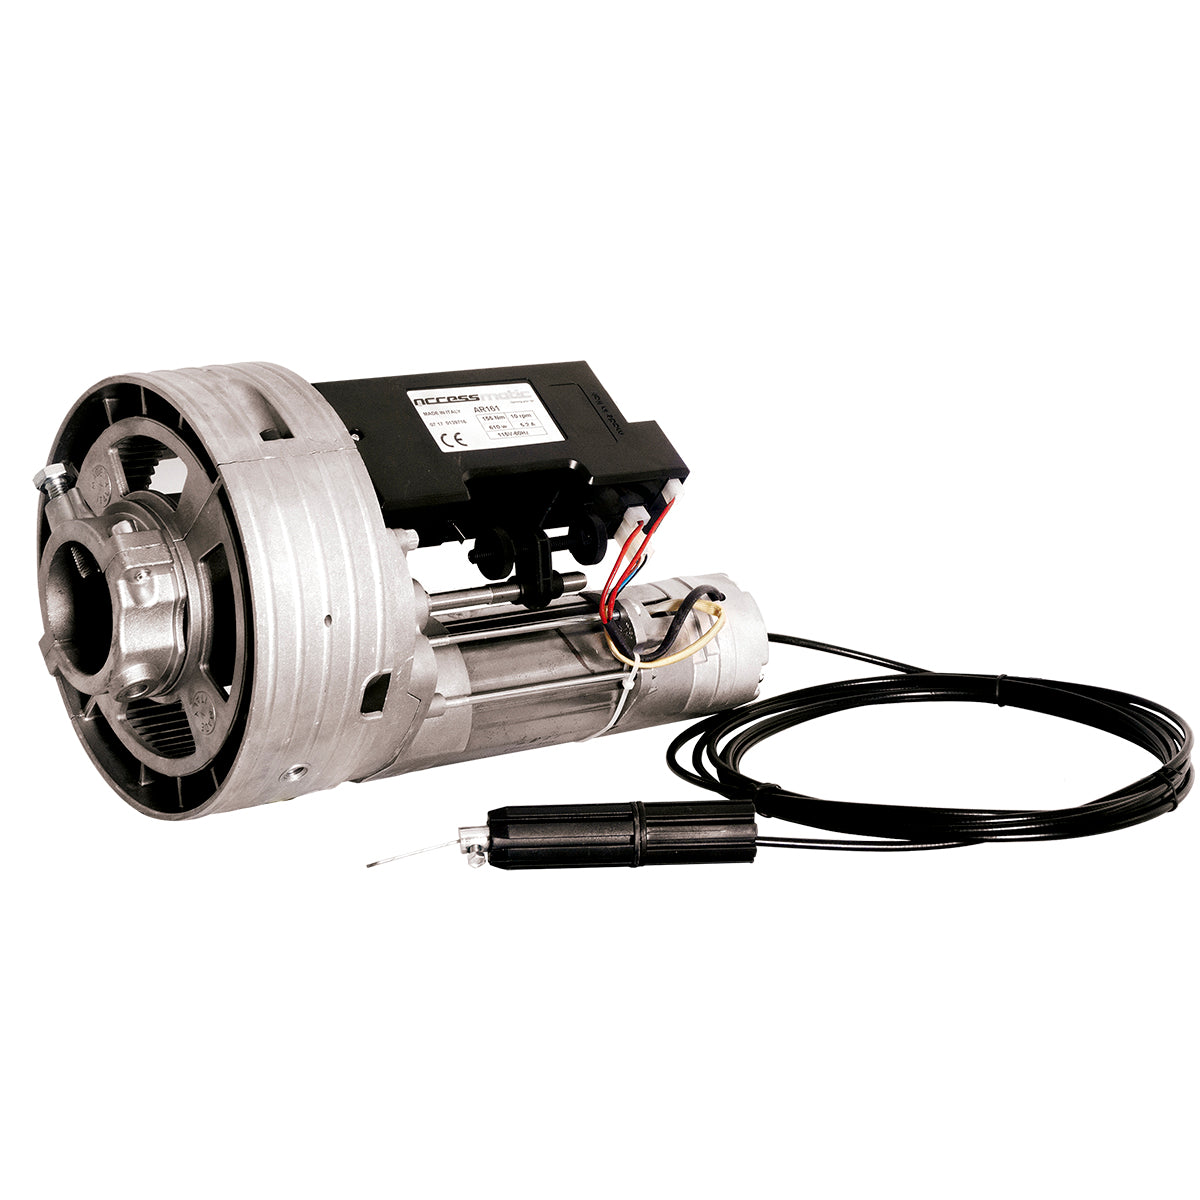 MOTOR PARA CORTINA ENROLLABLE ACCESSMATIC ARMADILLO 261 DE 260 KG